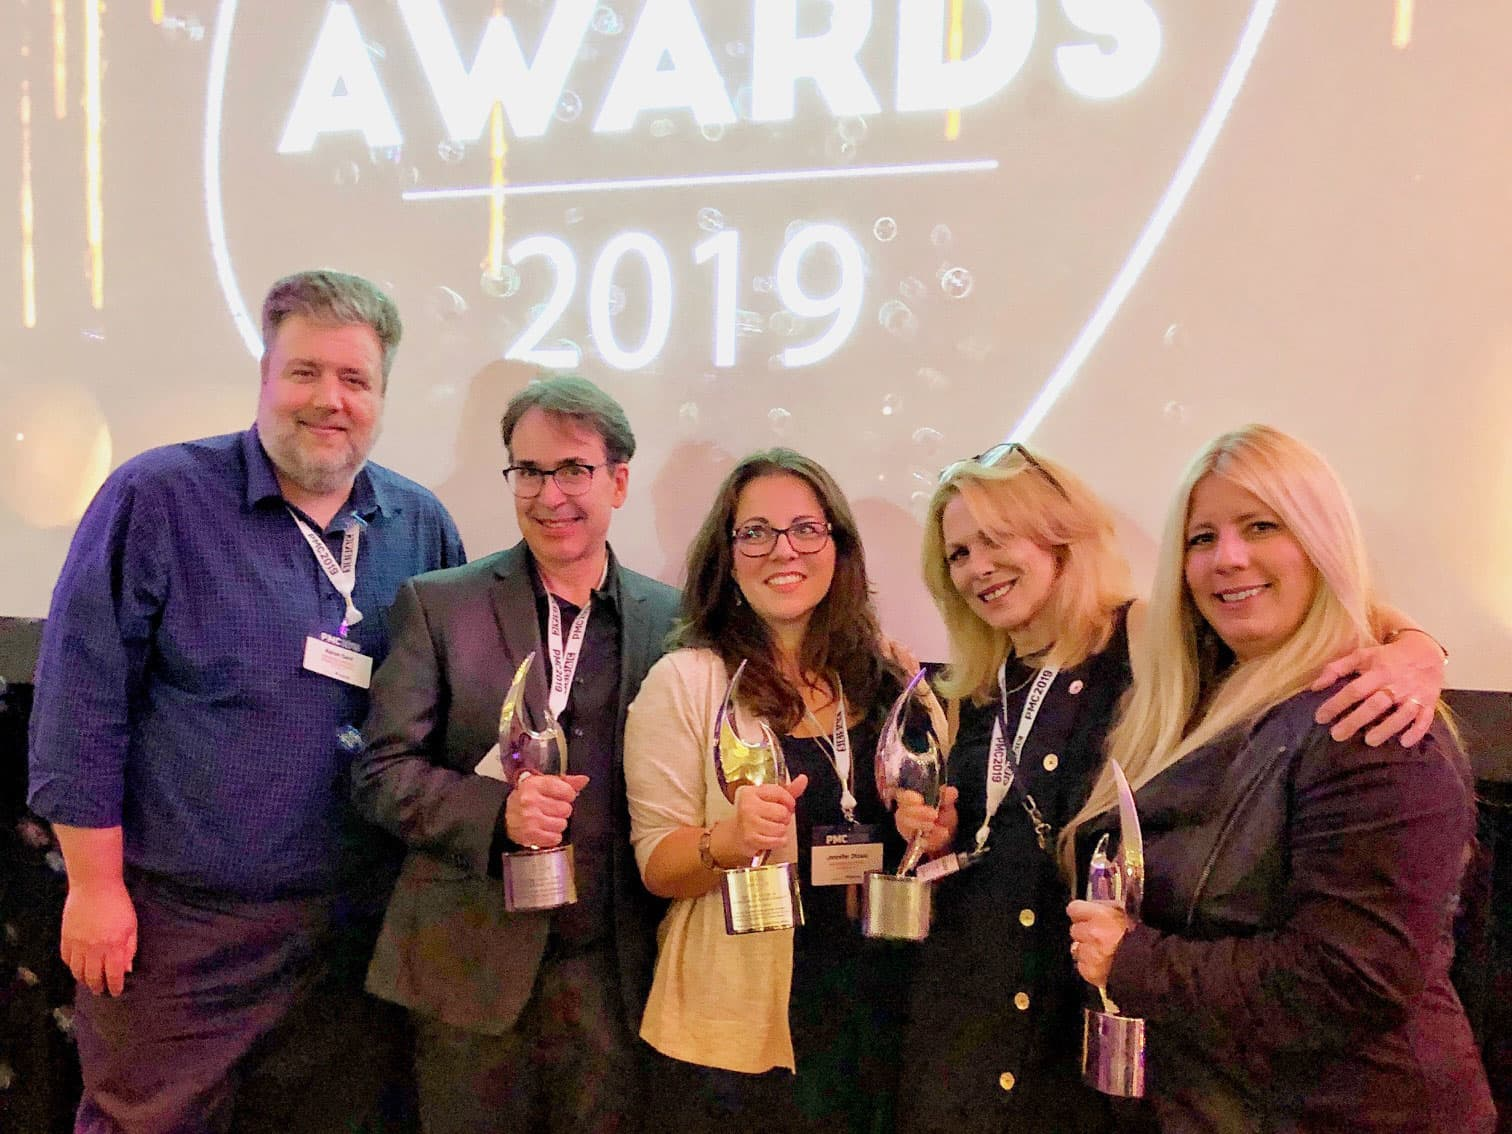 WARNER CHAPPELL PRODUCTION MUSIC BRINGS HOME FOUR MARK AWARDS